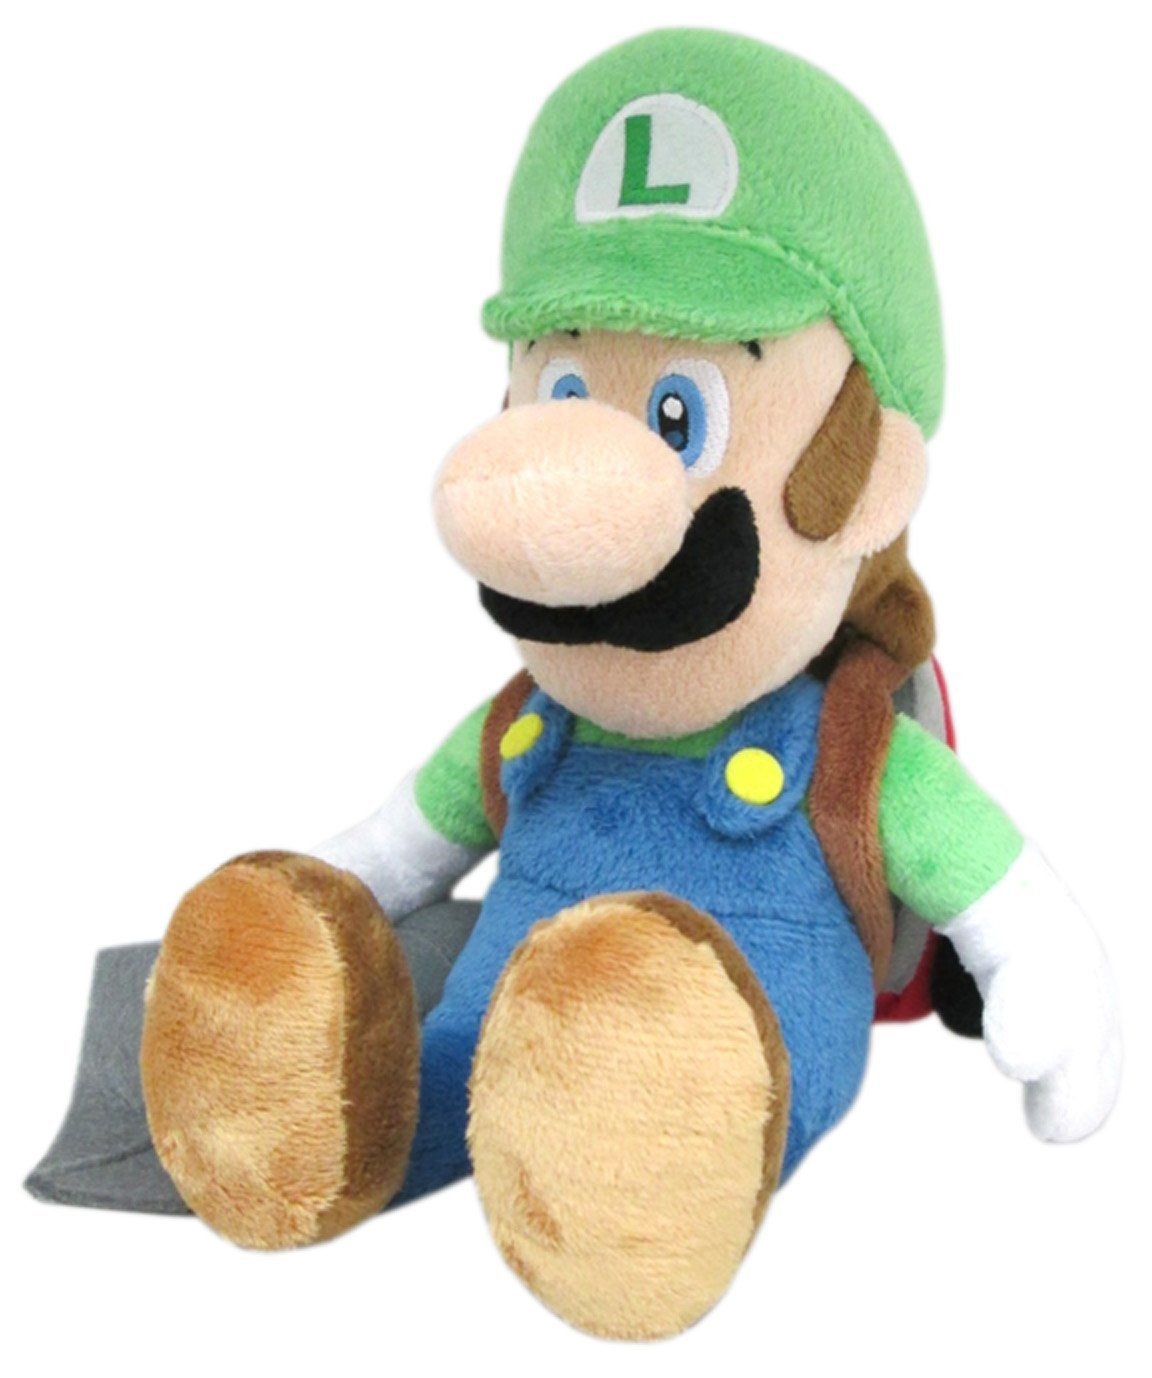 Official Nintendo Super Mario Plush Series Stuffed Toy 10 Luigi With Ghost Vacuum Plush